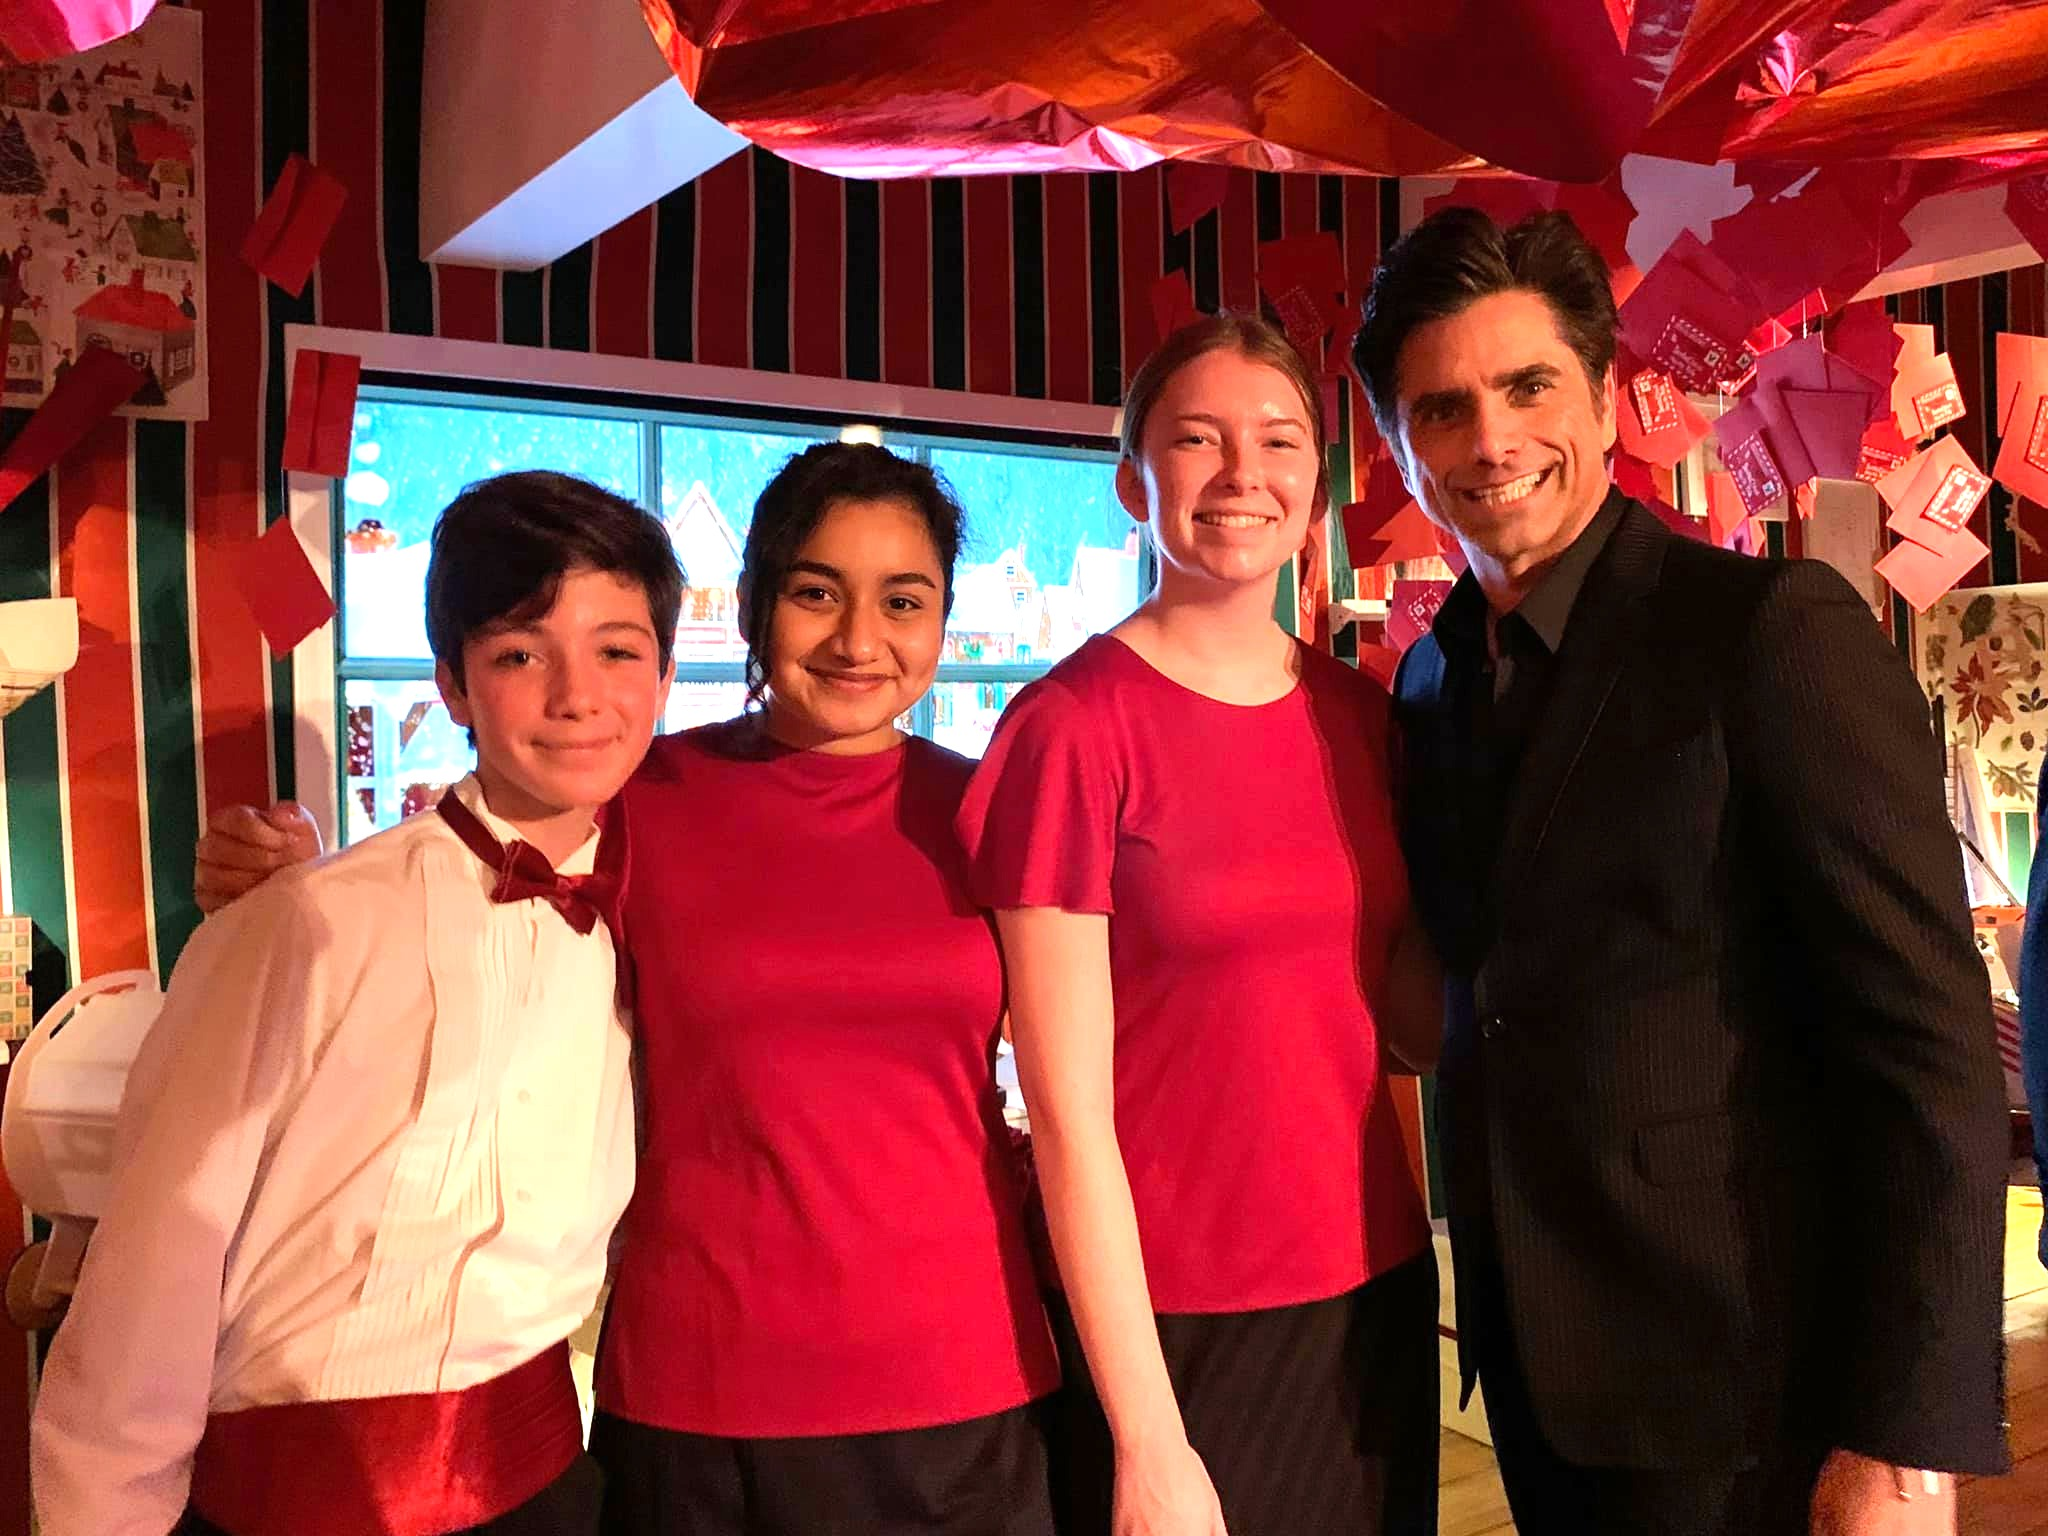 MUSYCA singers with John Stamos